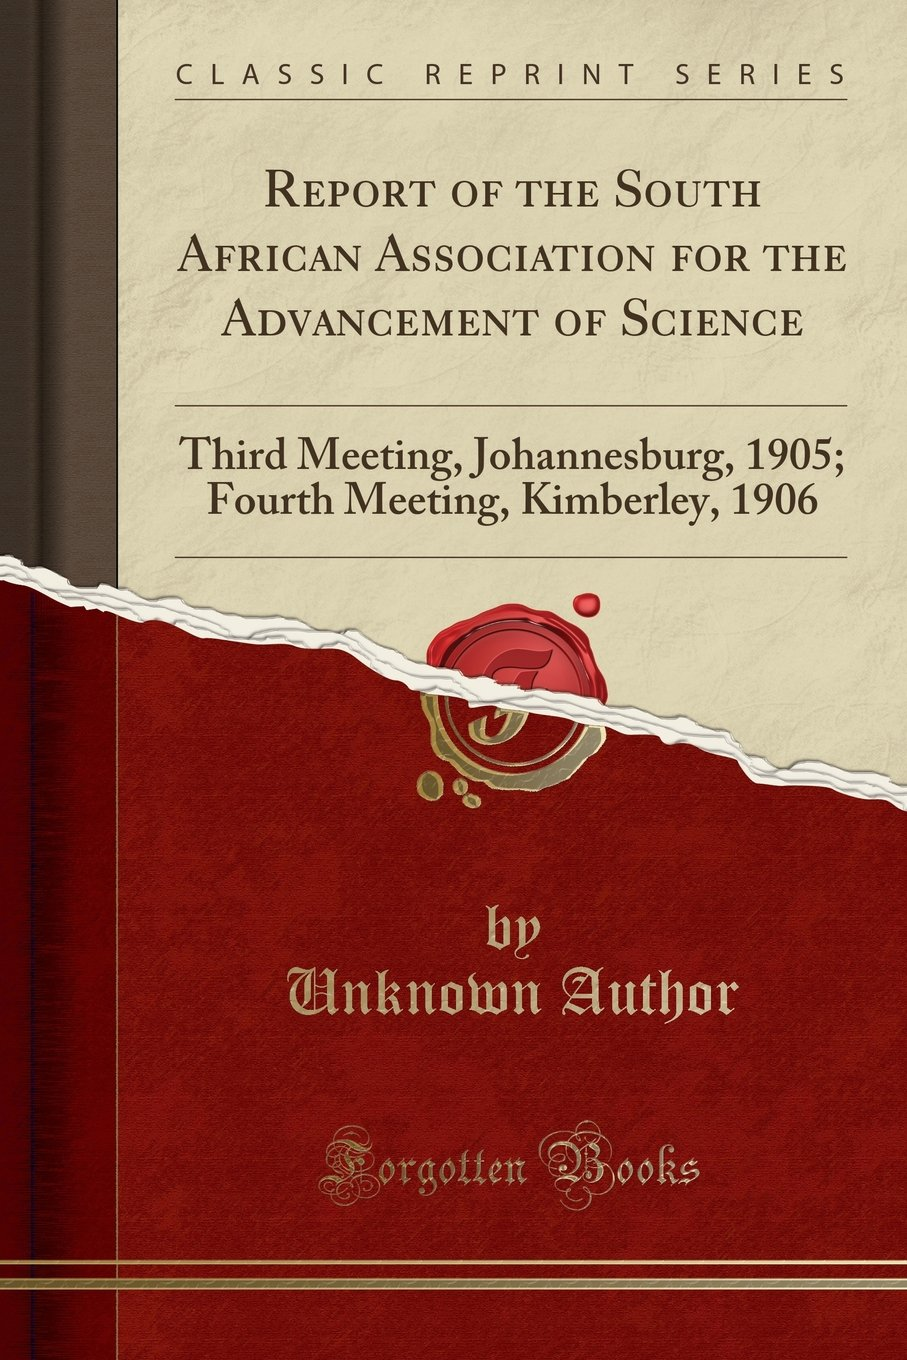 Download Report of the South African Association for the Advancement of Science: Third Meeting, Johannesburg, 1905; Fourth Meeting, Kimberley, 1906 (Classic Reprint) pdf